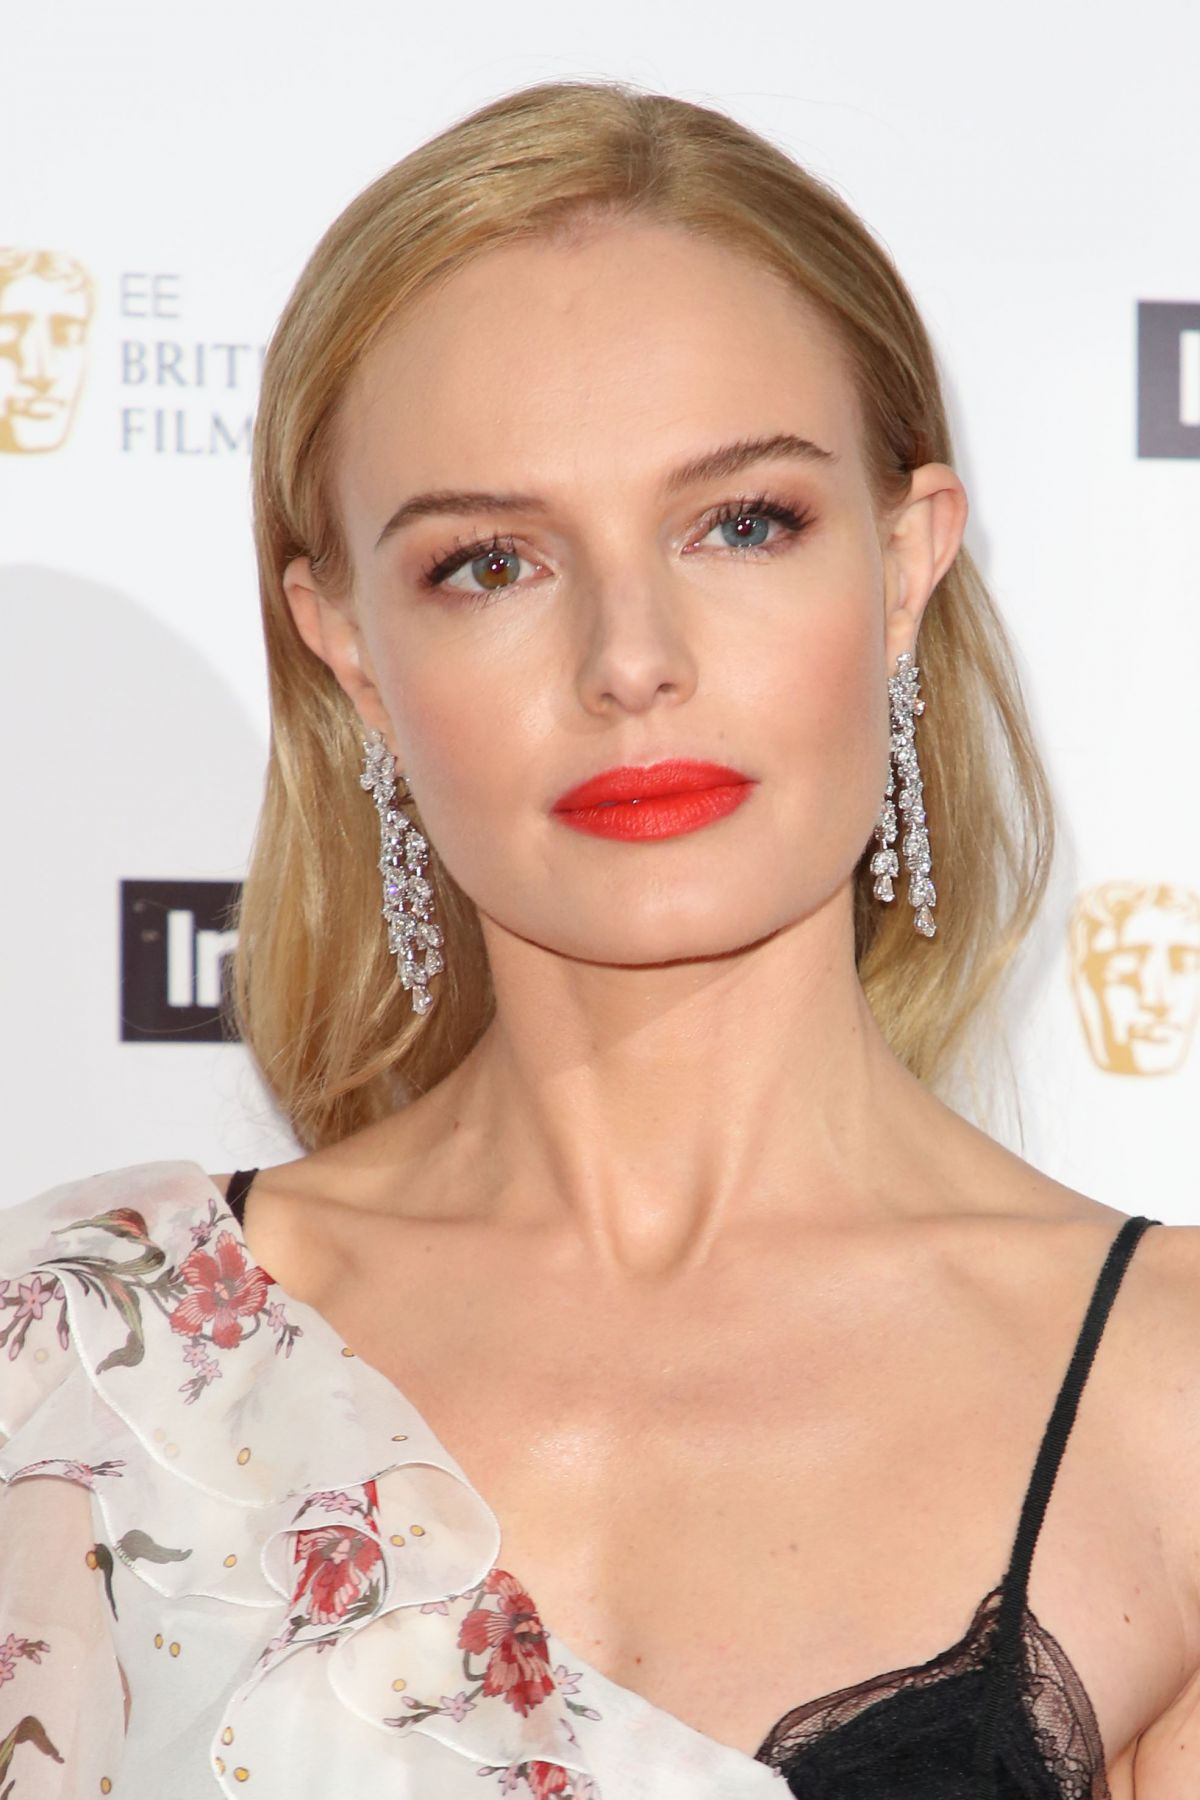 KATE BOSWORTH at Insty... Kate Bosworth